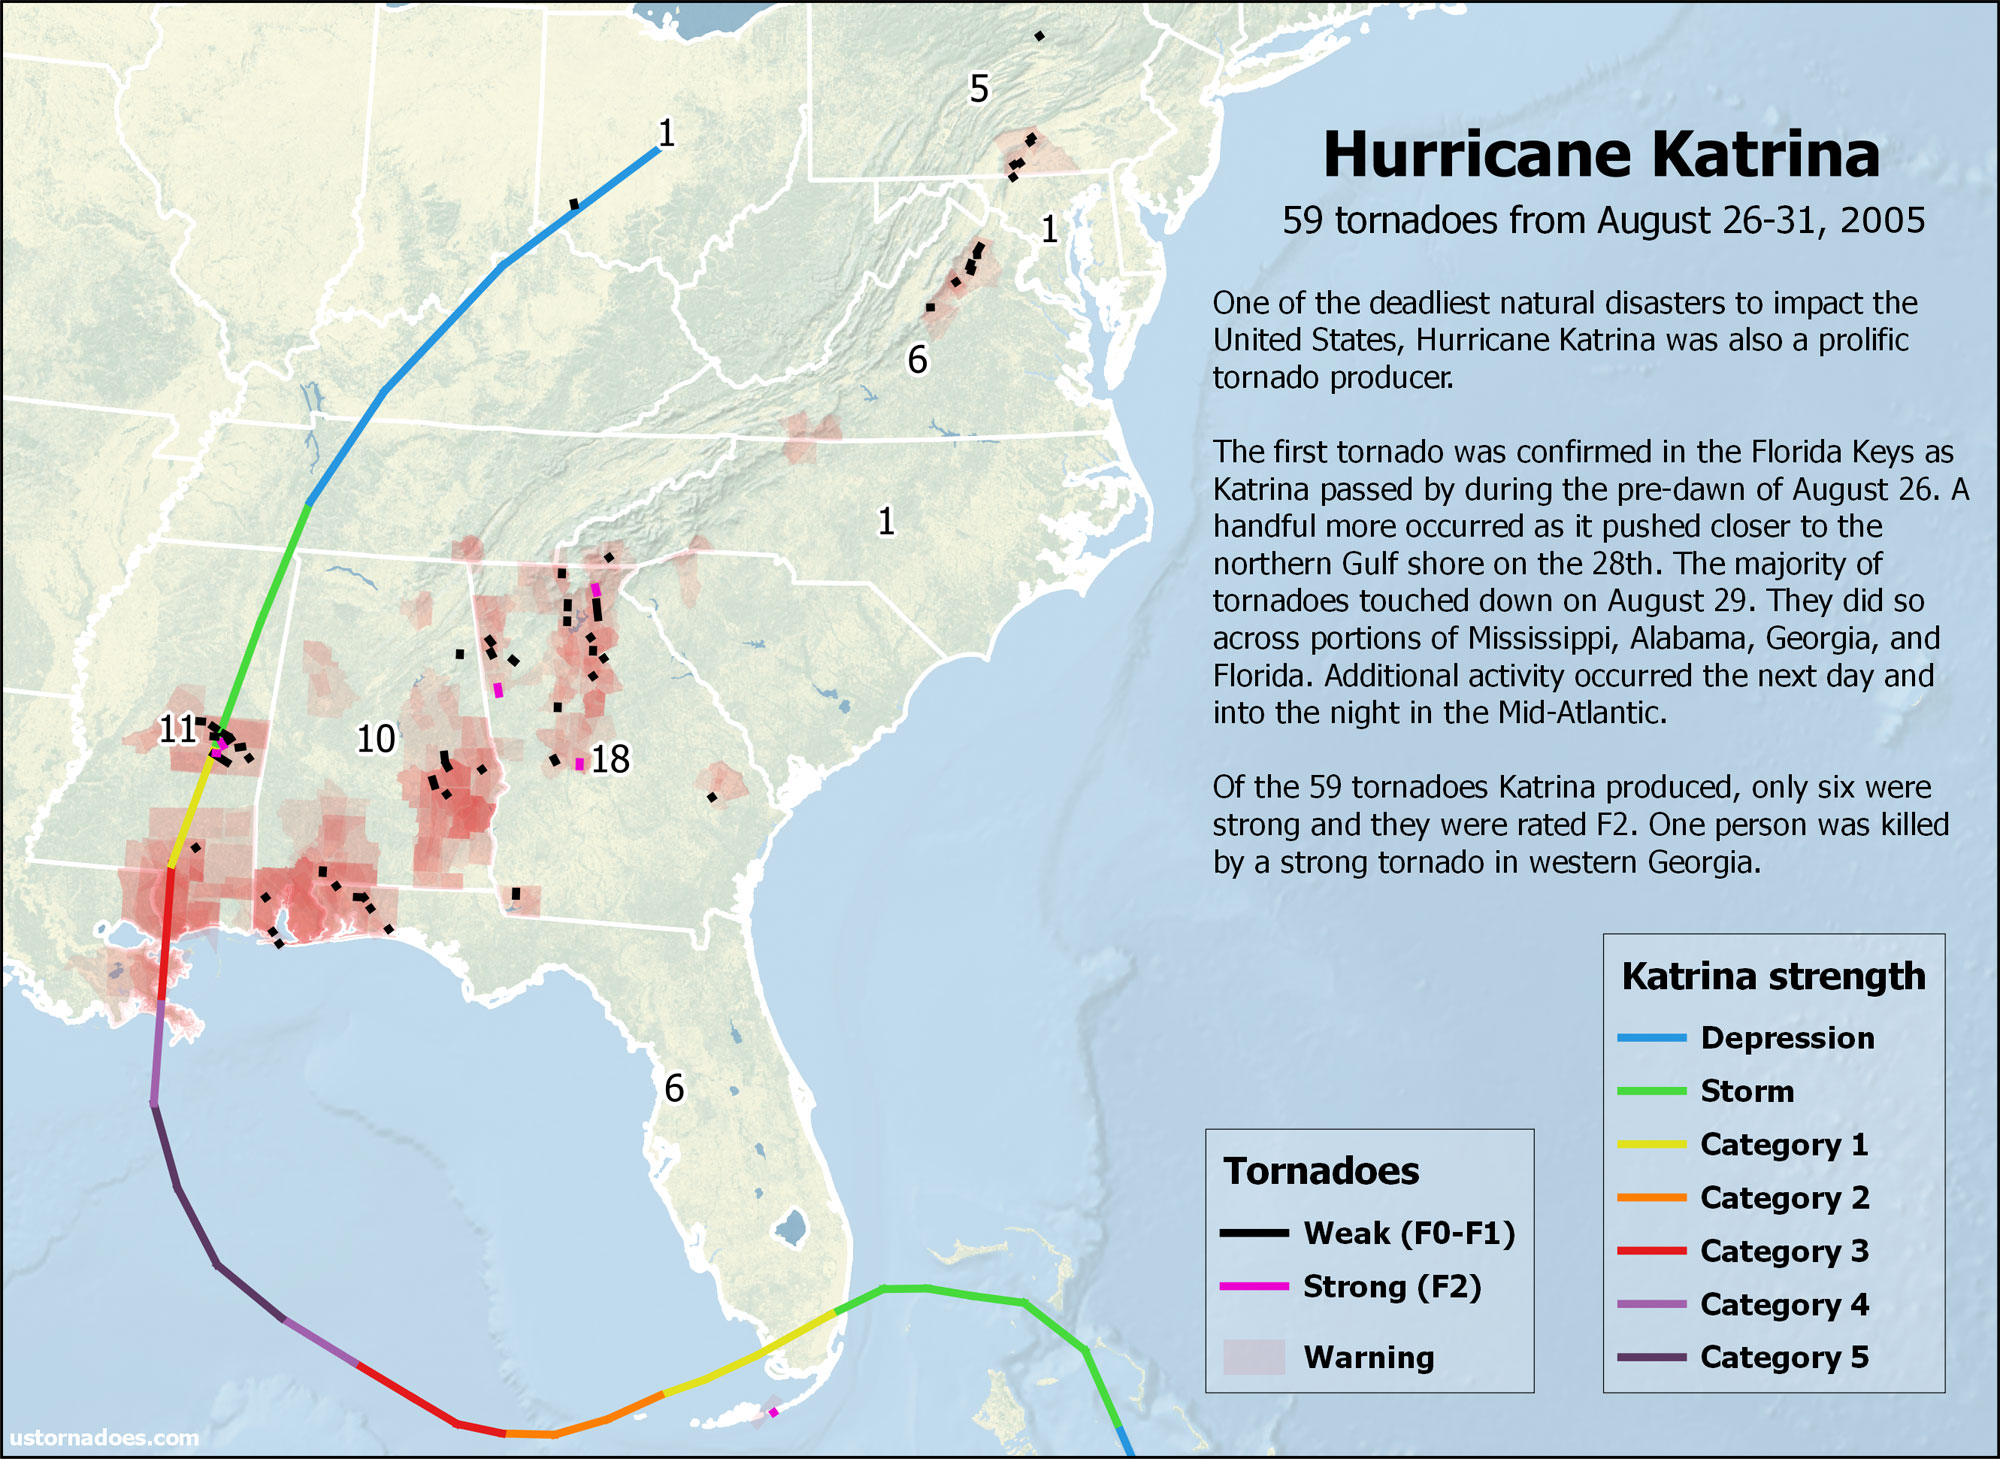 Hurricane Katrina also caused a tornado outbreak - U.S. Tornadoes